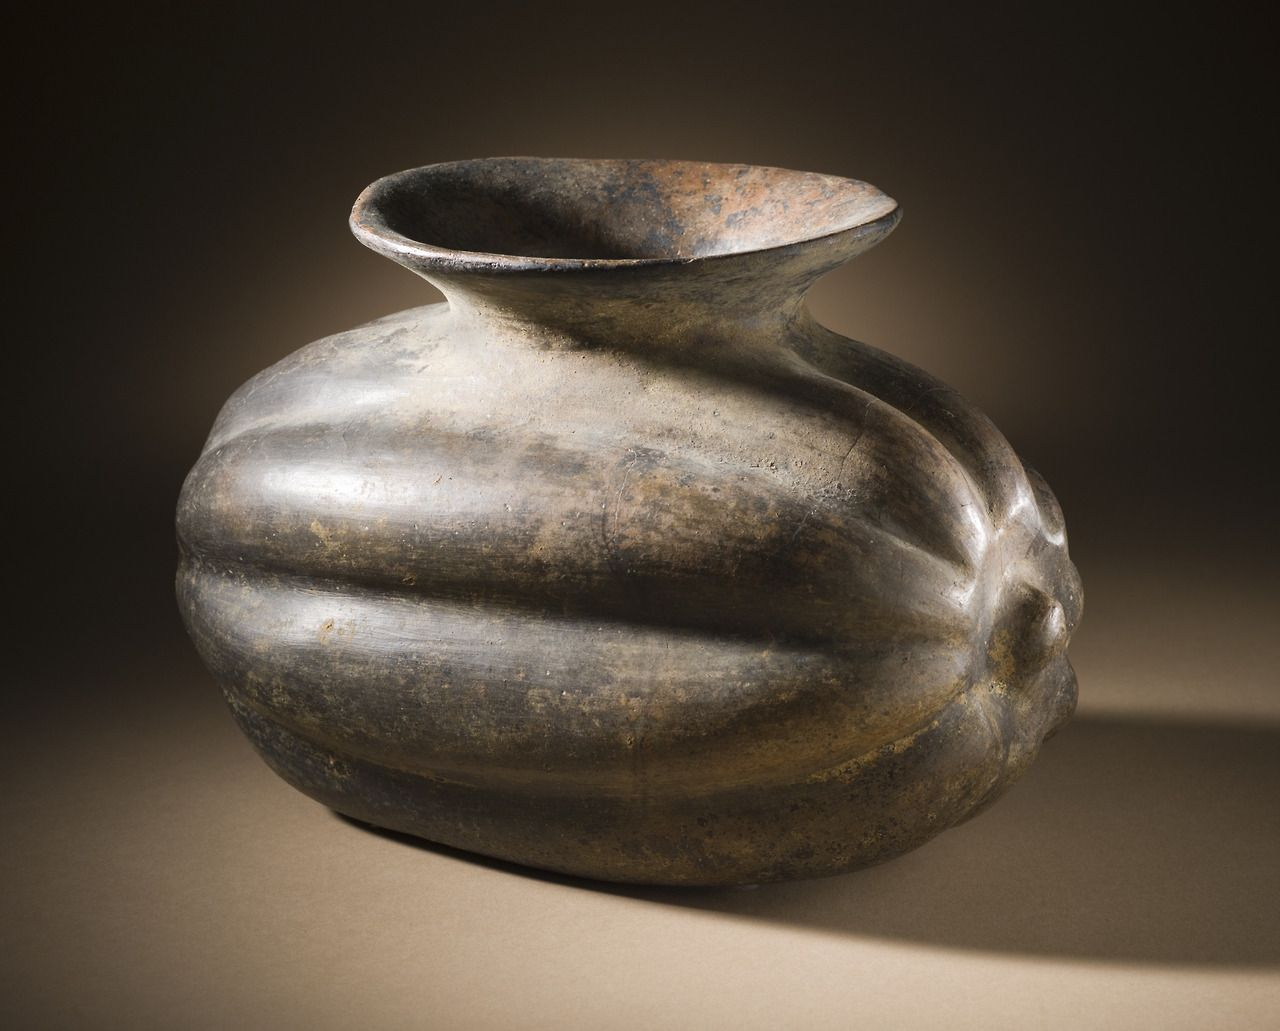 Squash vessel, made in Colima, Mexico, 200 BC-500 AD